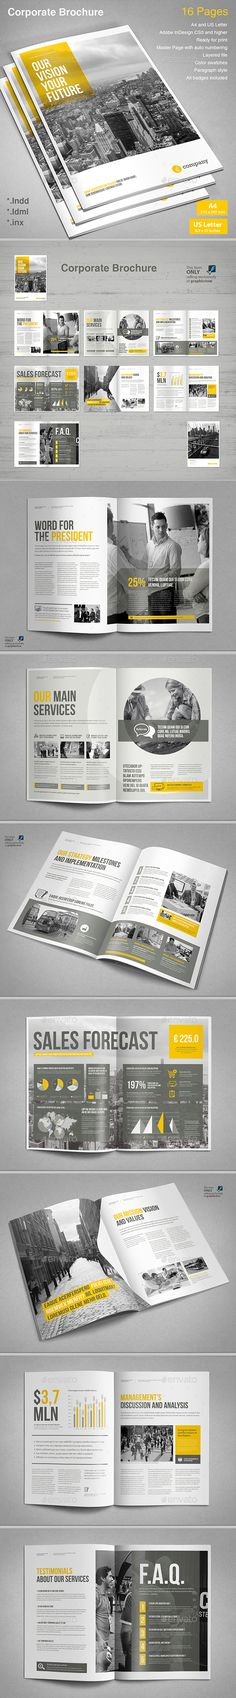 Corporate Brochure Template InDesign INDD, AI Illustrator